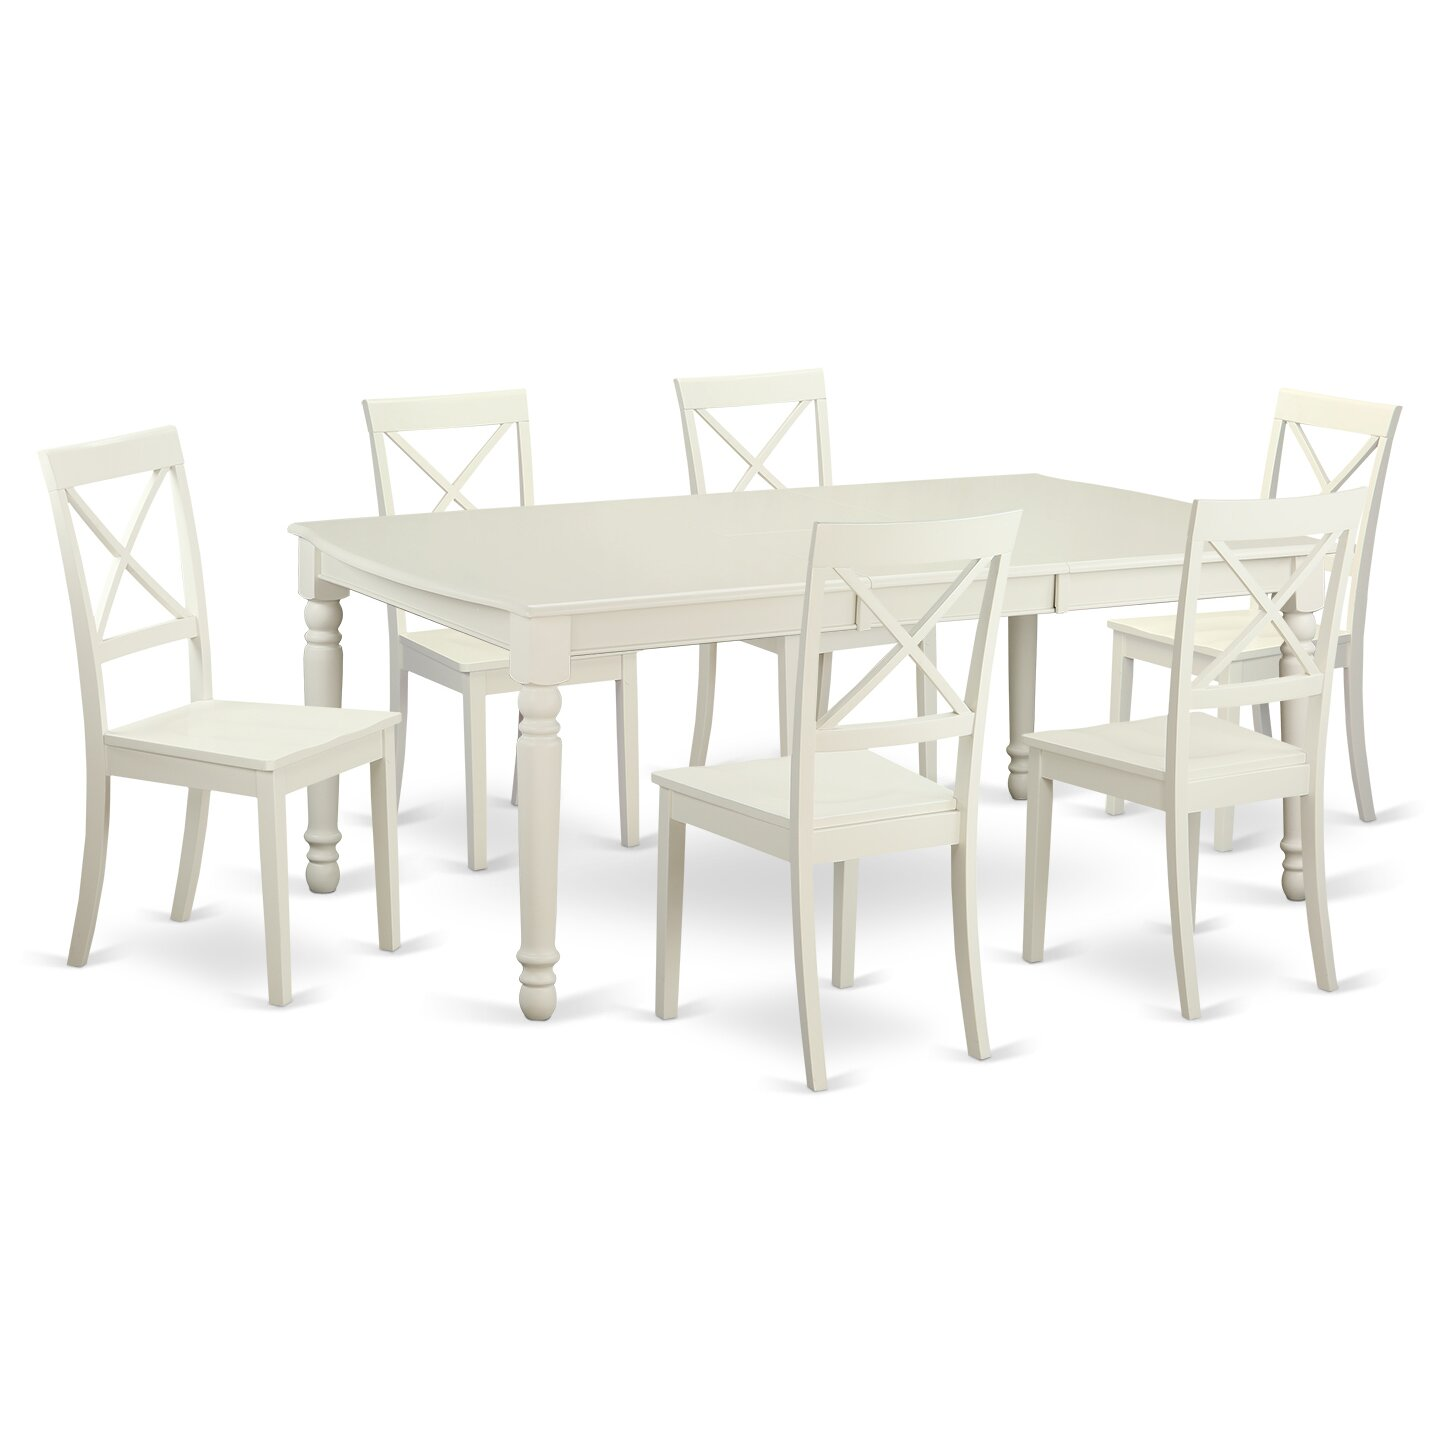 East west dover 7 piece dining set reviews wayfair for Furniture 7 credit reviews